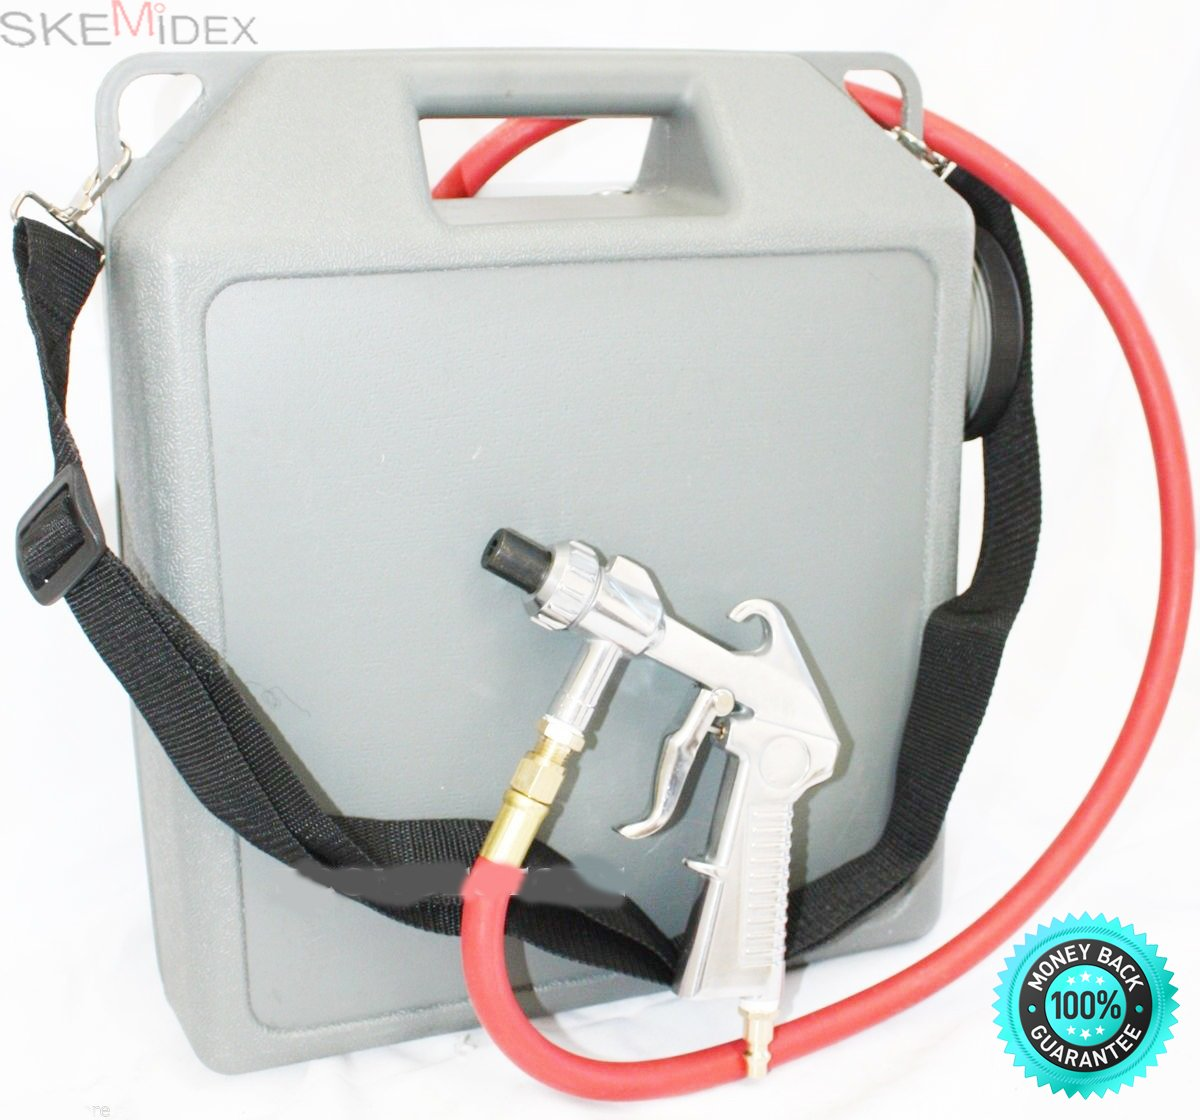 SKEMiDEX---PORTABLE AIR SAND BLASTER AIR CLEANER CLEANING TOOL WITH HOSE AND GUN NEW. Hardened steel nozzle & shoulder strap included Works with glass beads, sand, and aluminum oxide by SKEMiDEX (Image #1)